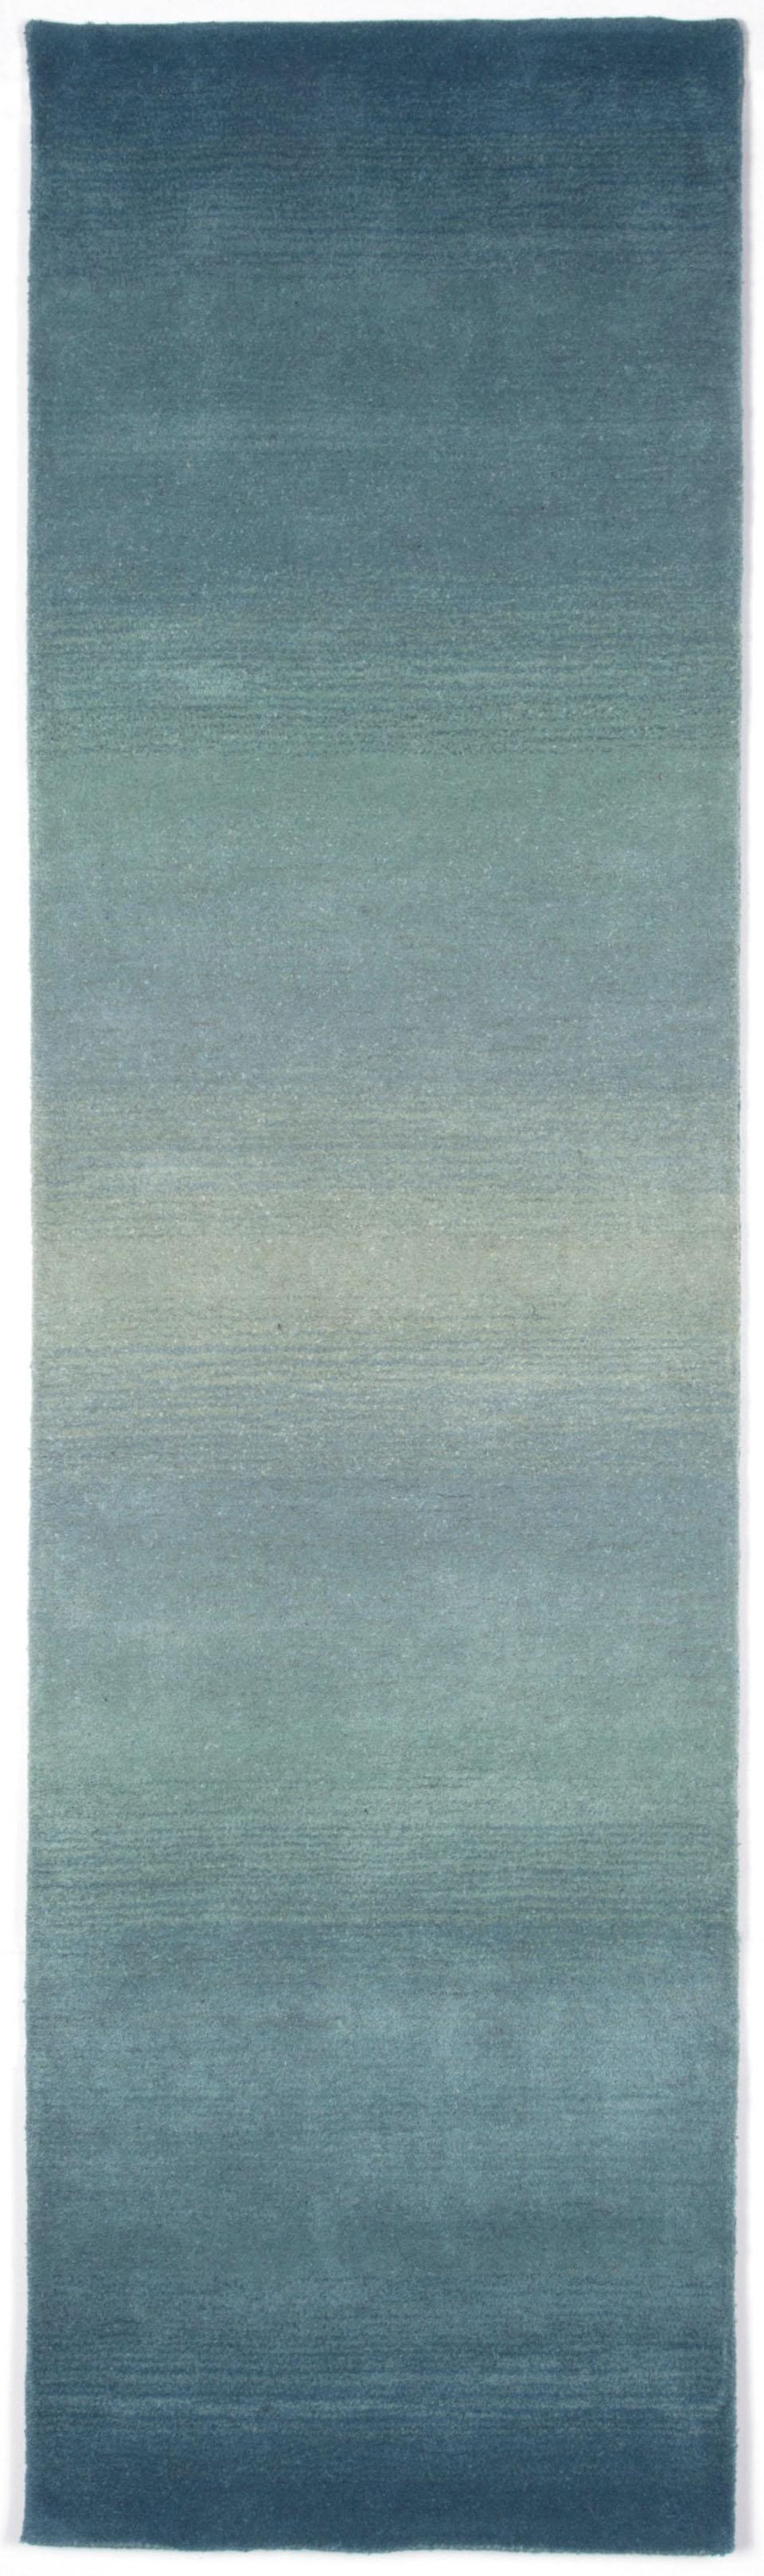 shag ombre blue archived and ft of brown engaging size for rugs green large ideas bathroom area bedroom rug full